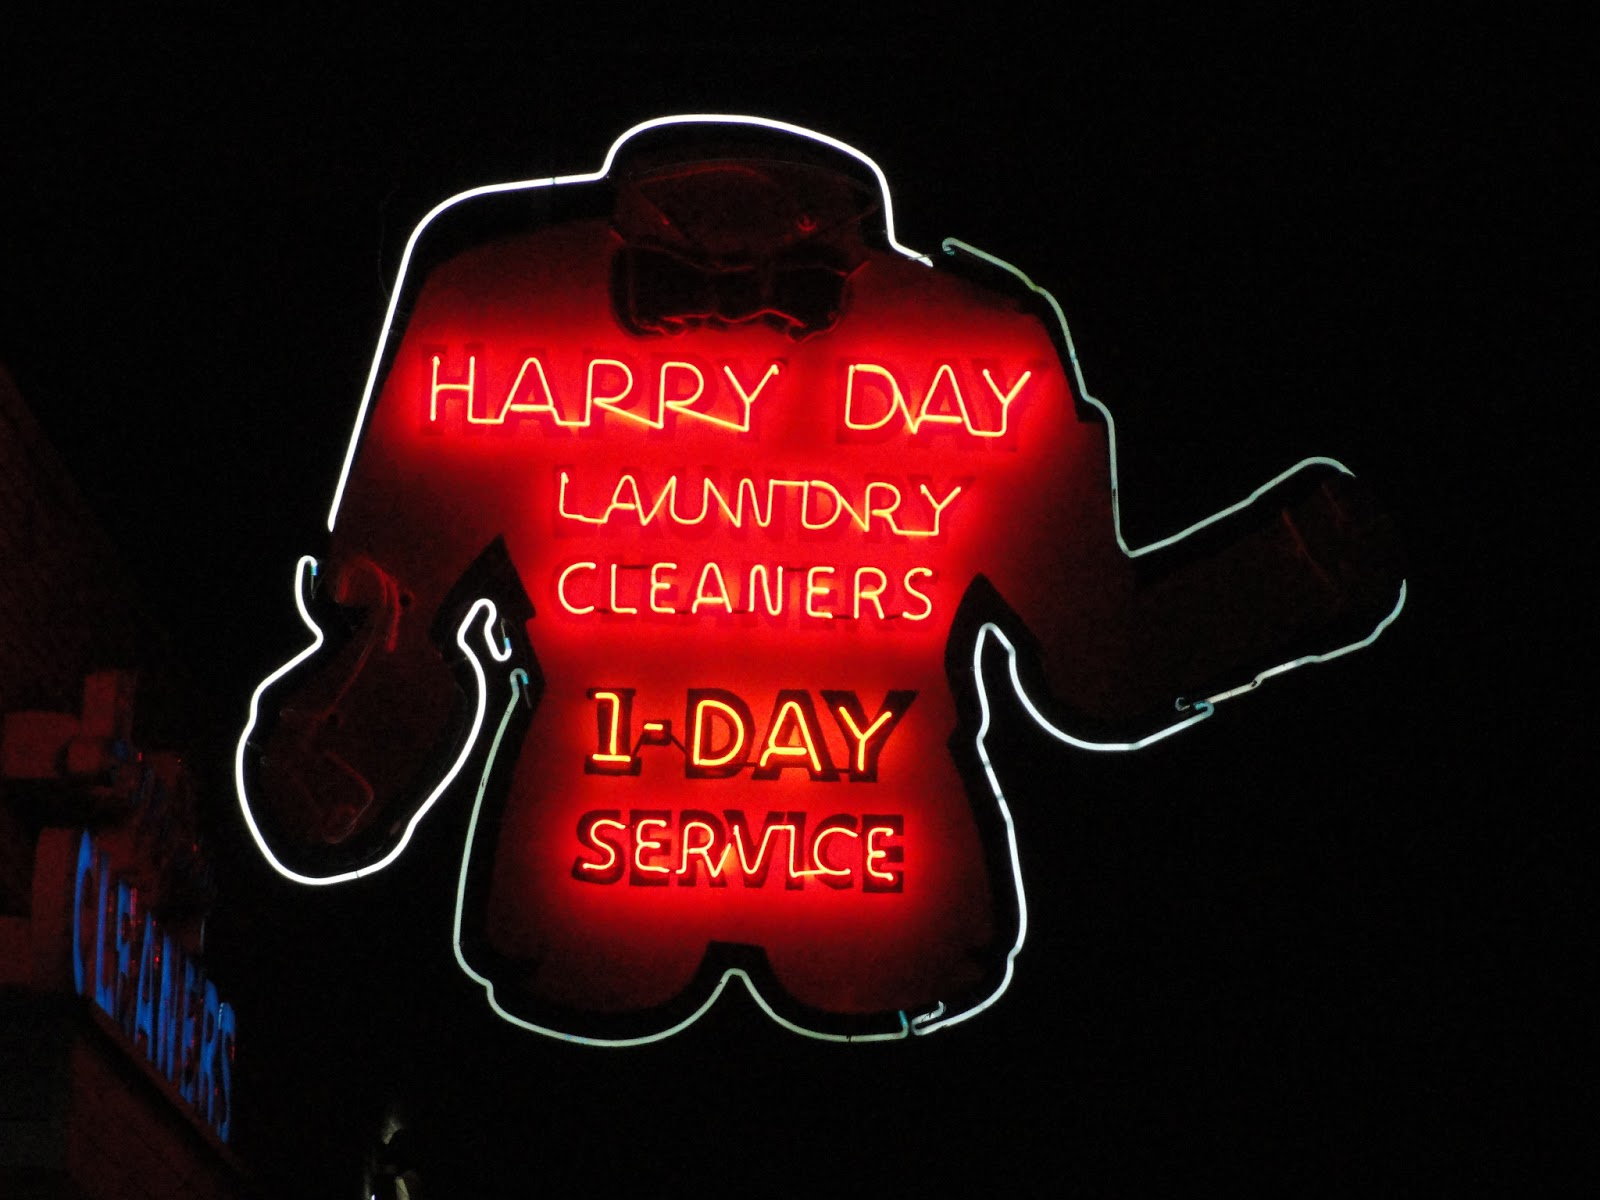 happy day laundry cleaners has grown into a chain of three stores but its original location with the classic neon sign is on union in the heart of